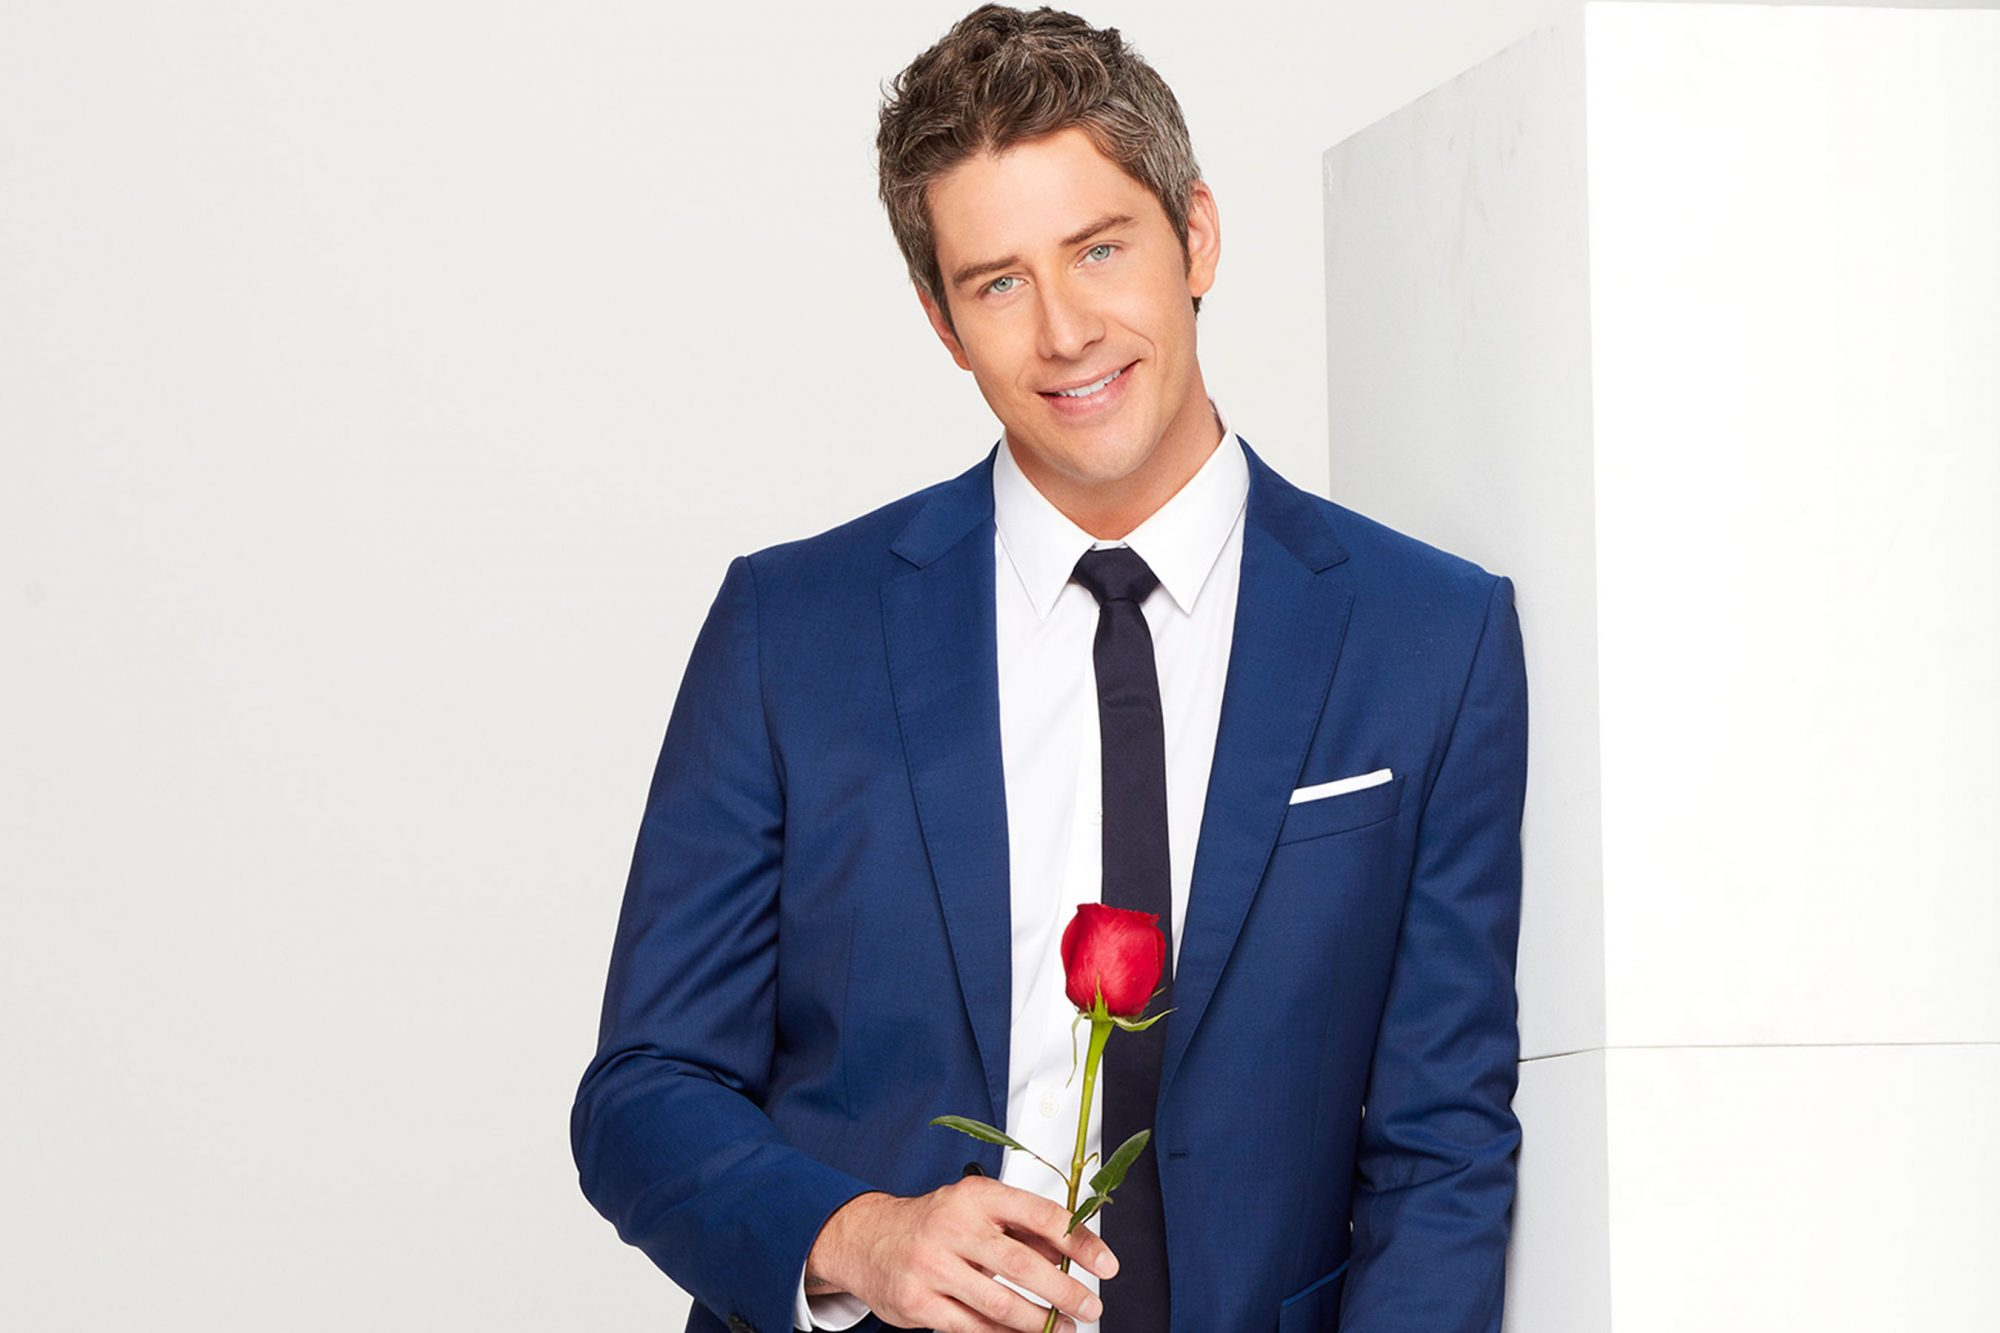 5. Season 22 (Arie Luyendyk Jr.)